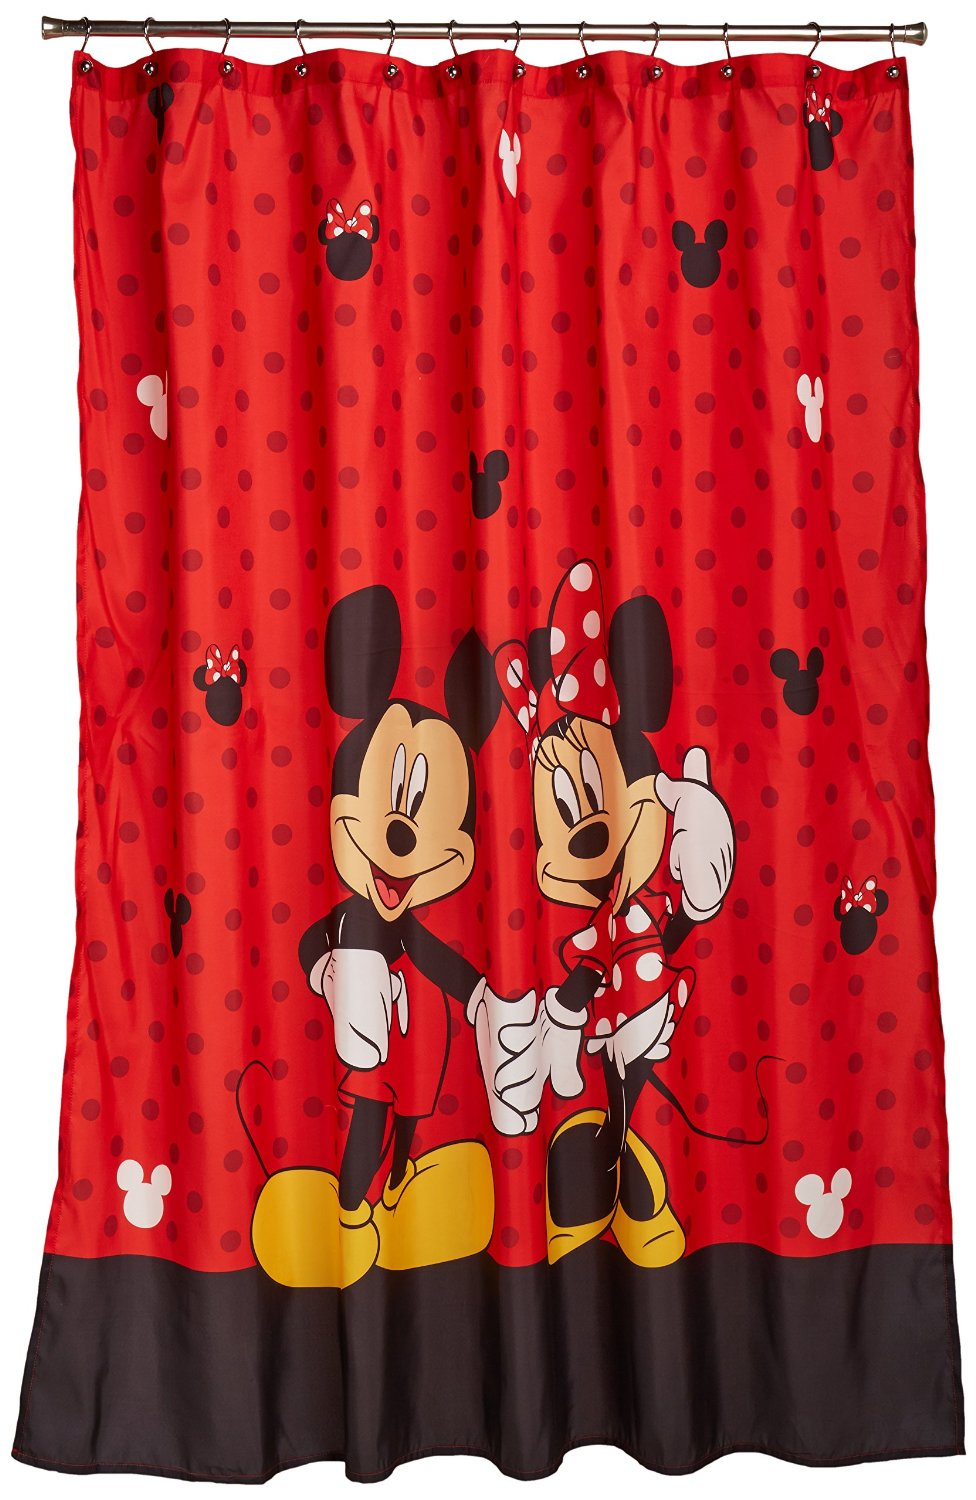 Red Disney Shower Curtain Full Of Mickey Amp Minnie Love